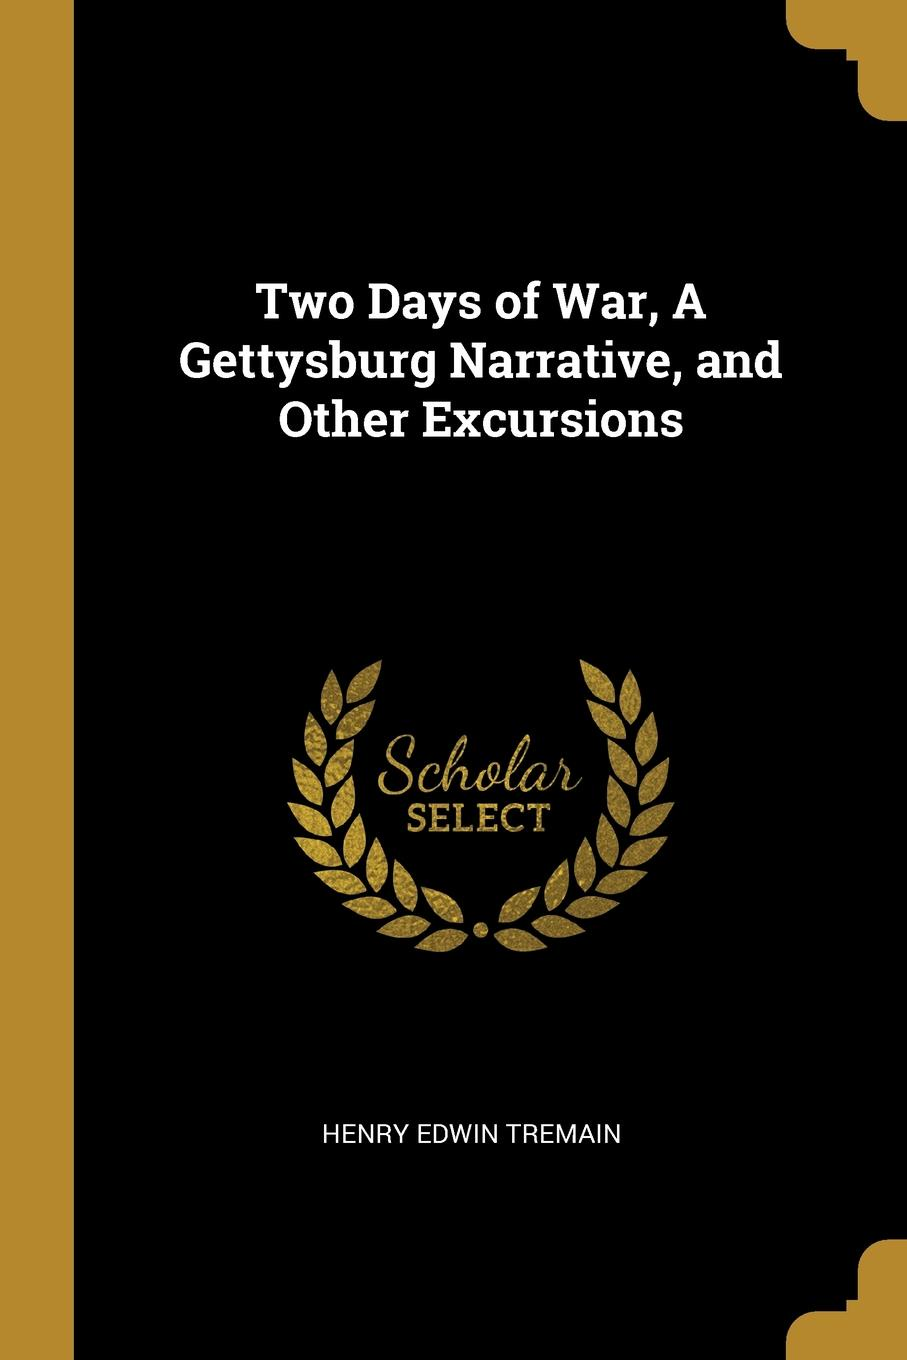 Henry Edwin Tremain. Two Days of War, A Gettysburg Narrative, and Other Excursions